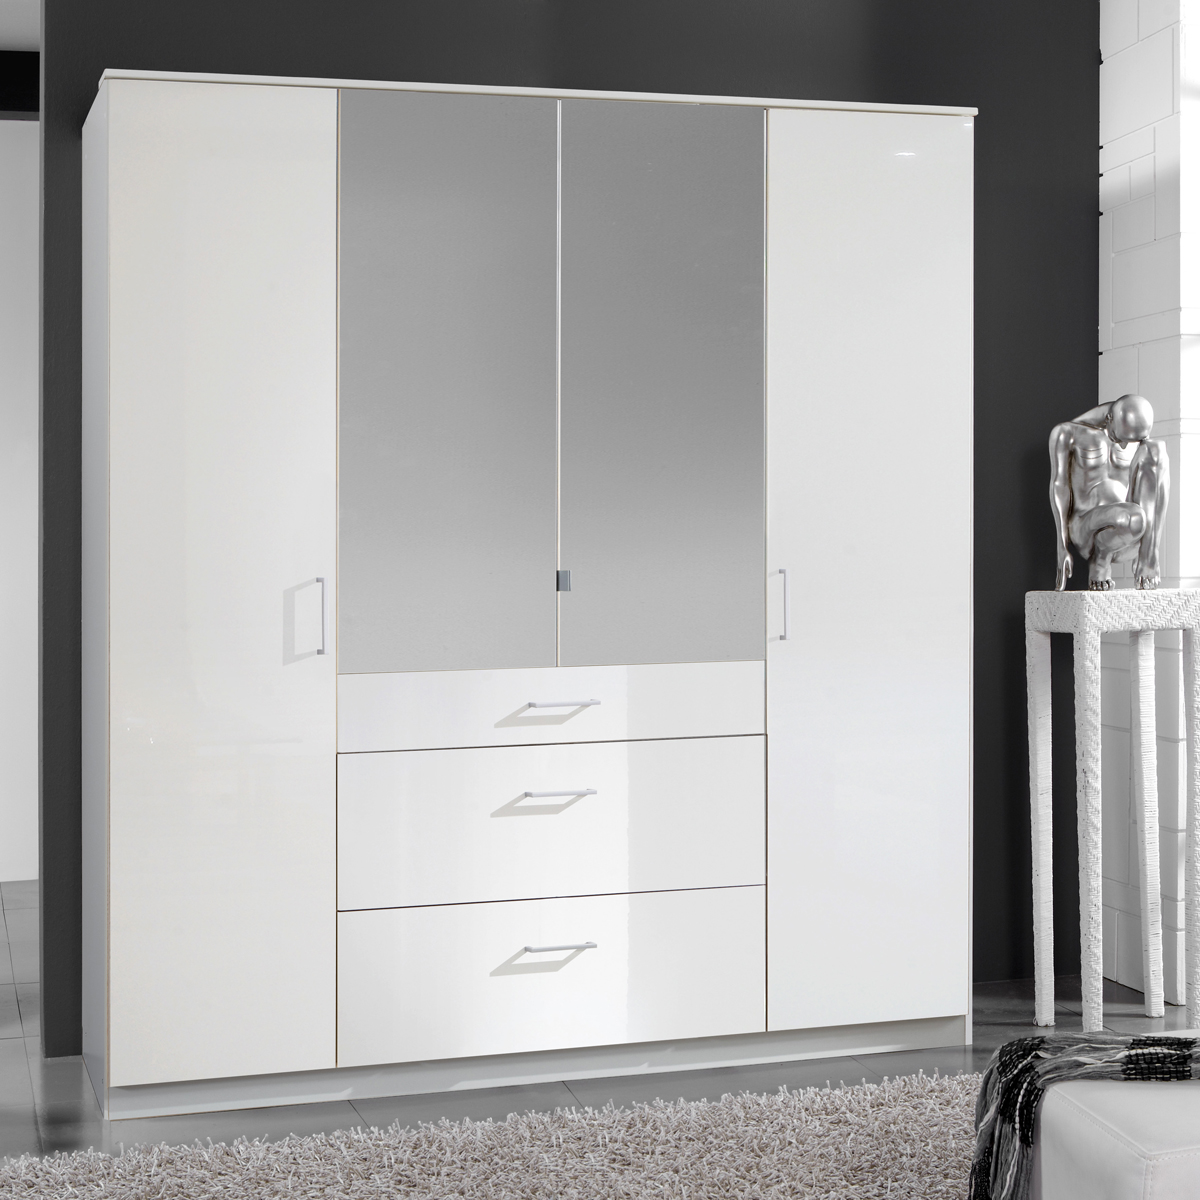 kleiderschrank clack dreht renschrank in hochglanz wei alpinwei spiegel 180 cm. Black Bedroom Furniture Sets. Home Design Ideas